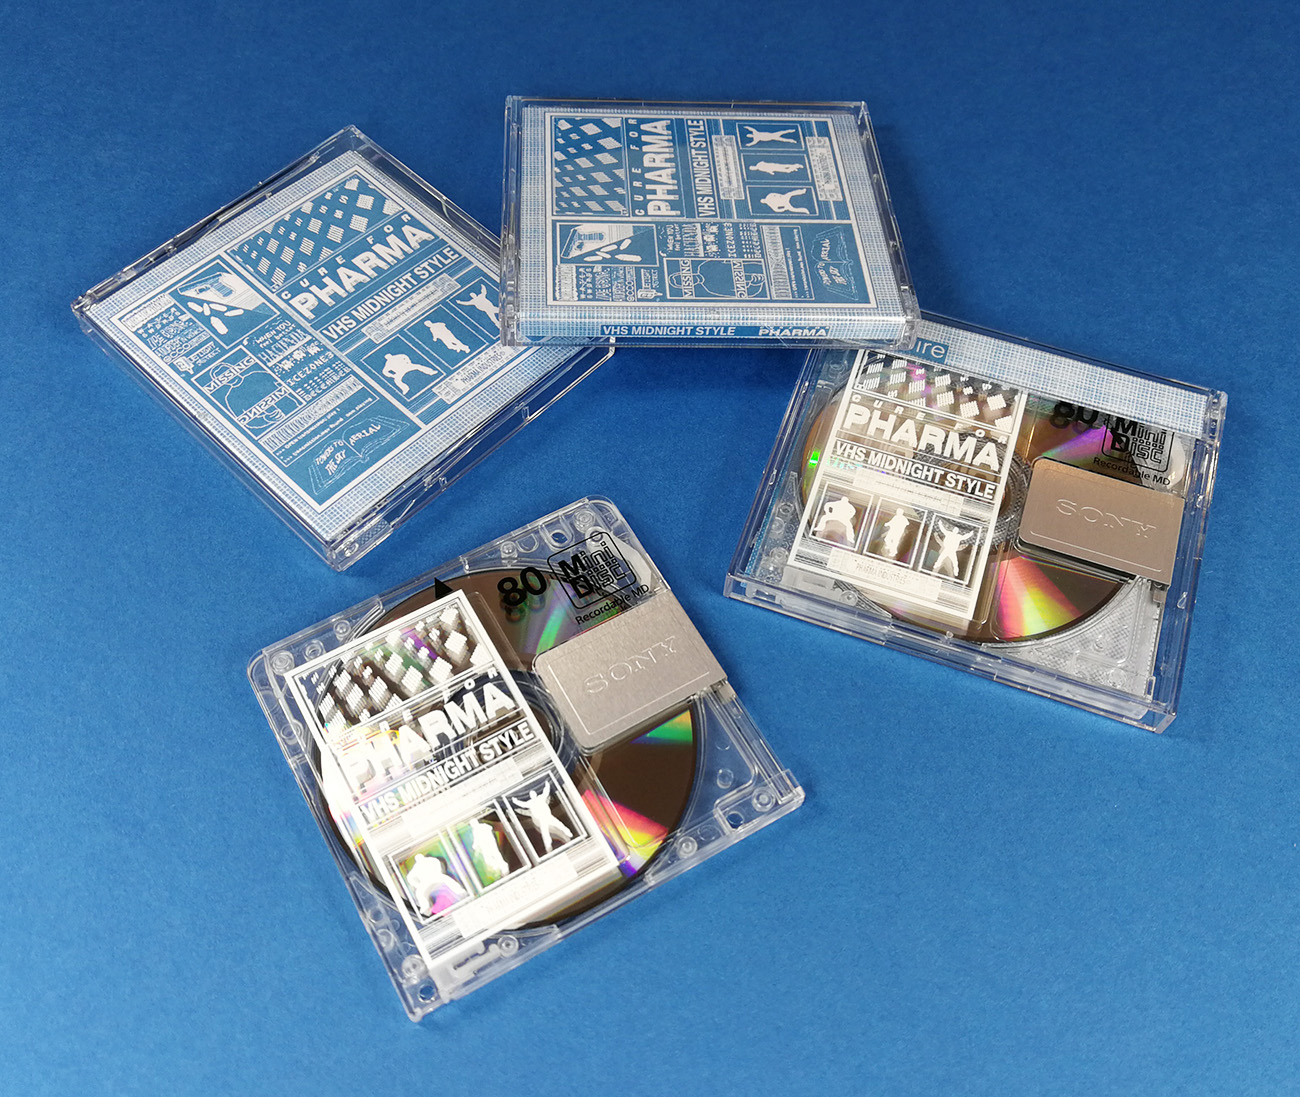 White on-body printing on the MiniDiscs, packed in clear cases with printed inserts